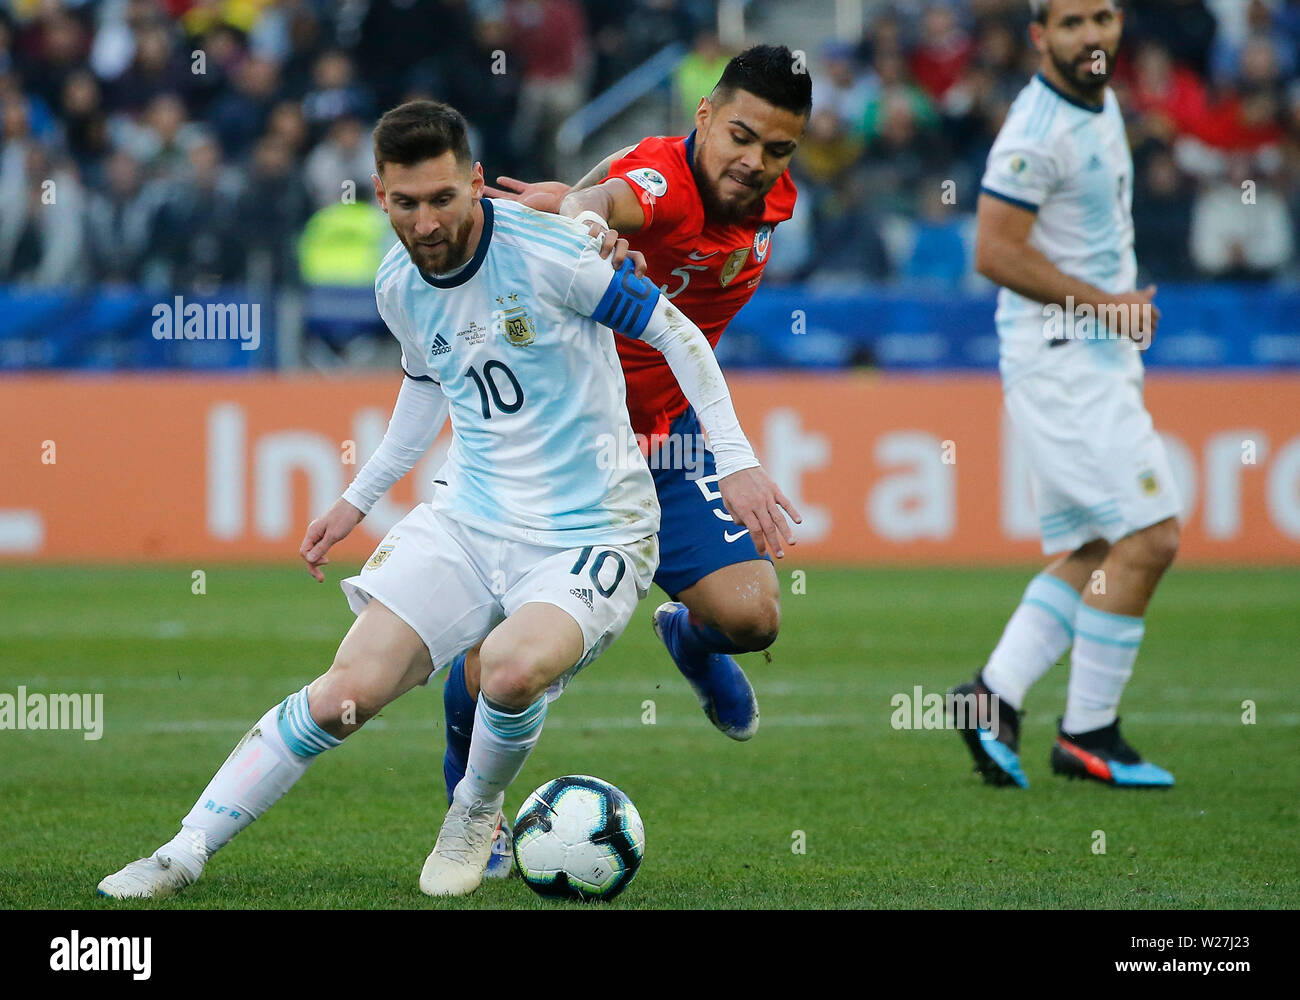 6th July 2019, Arena Corinthians Stadium, Sao Paulo, Brazil; Copa America international football, 3rd-4th playoff final, Argentina versus Chile; Lionel Messi of Argentina holds off the challenge from Paulo Díaz of Chile - Stock Image